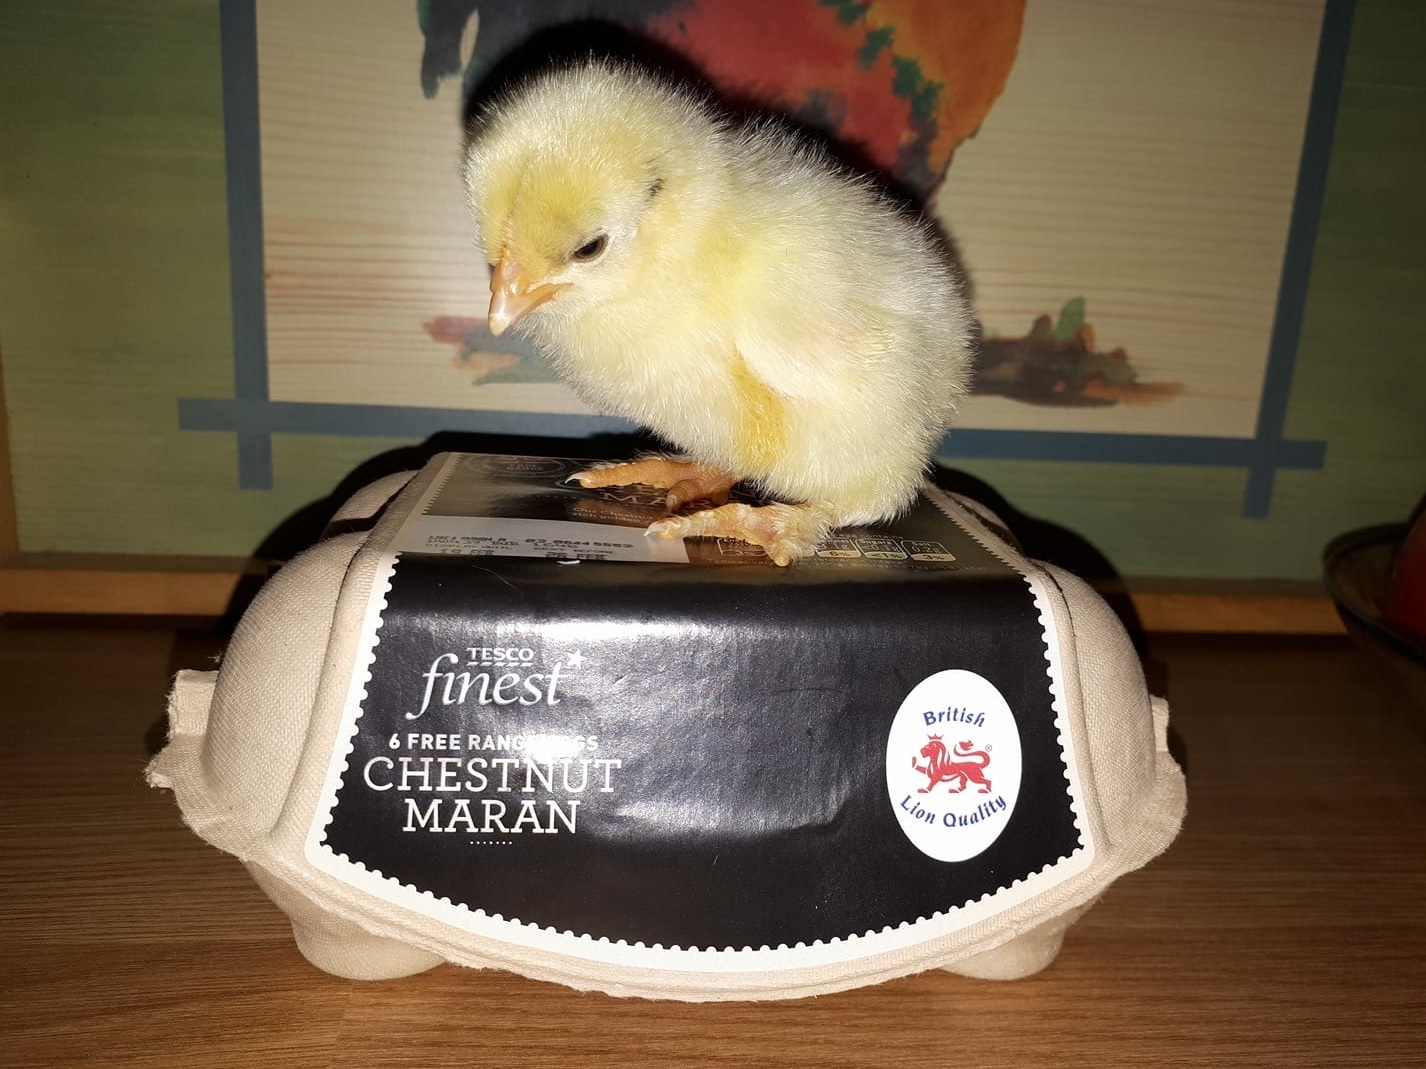 The chick hatched from a Tesco egg